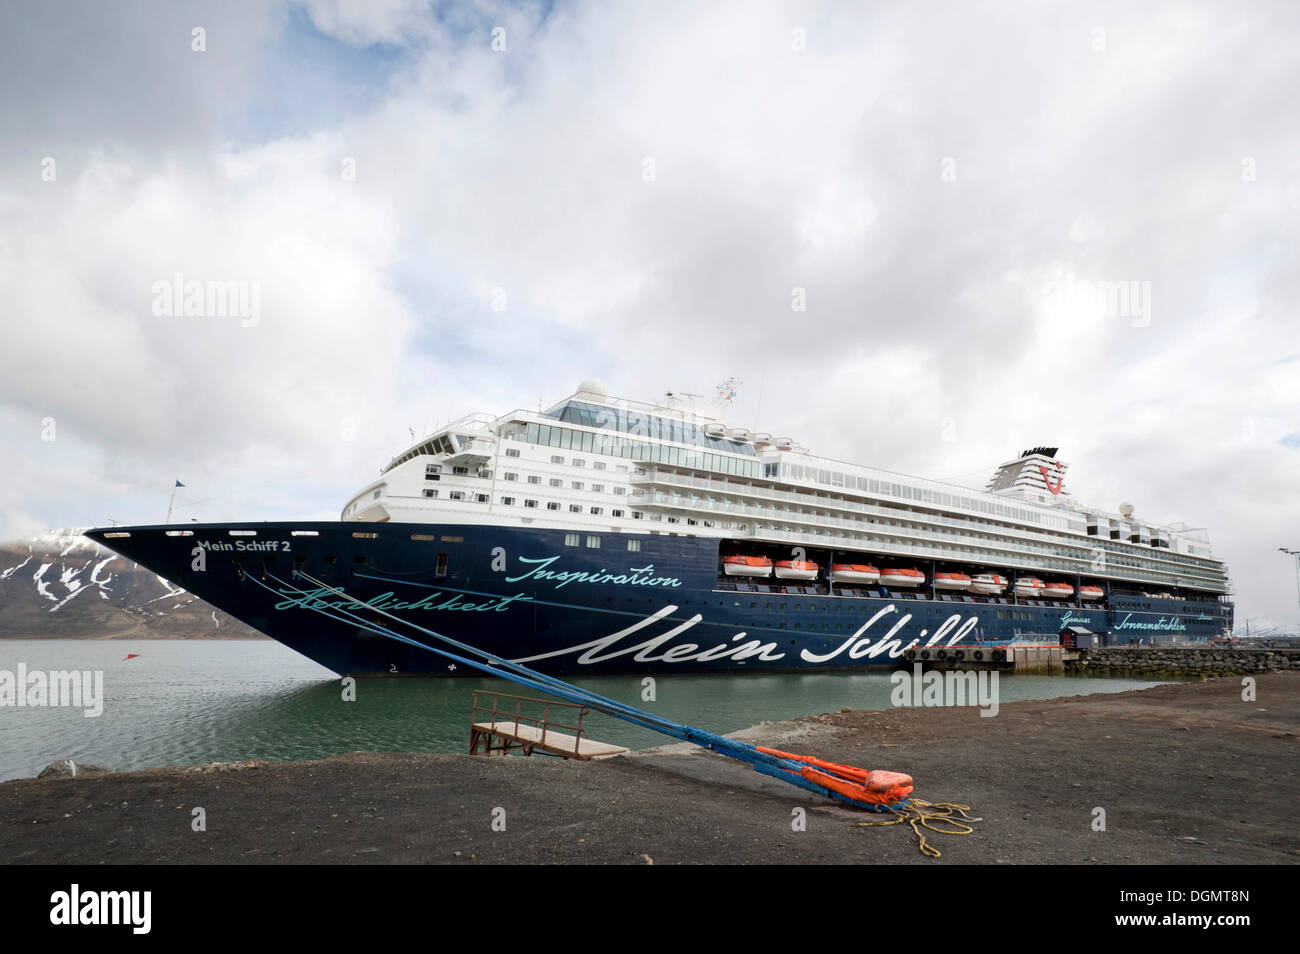 Cruise ship, Mein Schiff 2, from TUI Travel, moored in the port of Longyearbyen, Spitsbergen, Svalbard, Norway, Europe - Stock Image